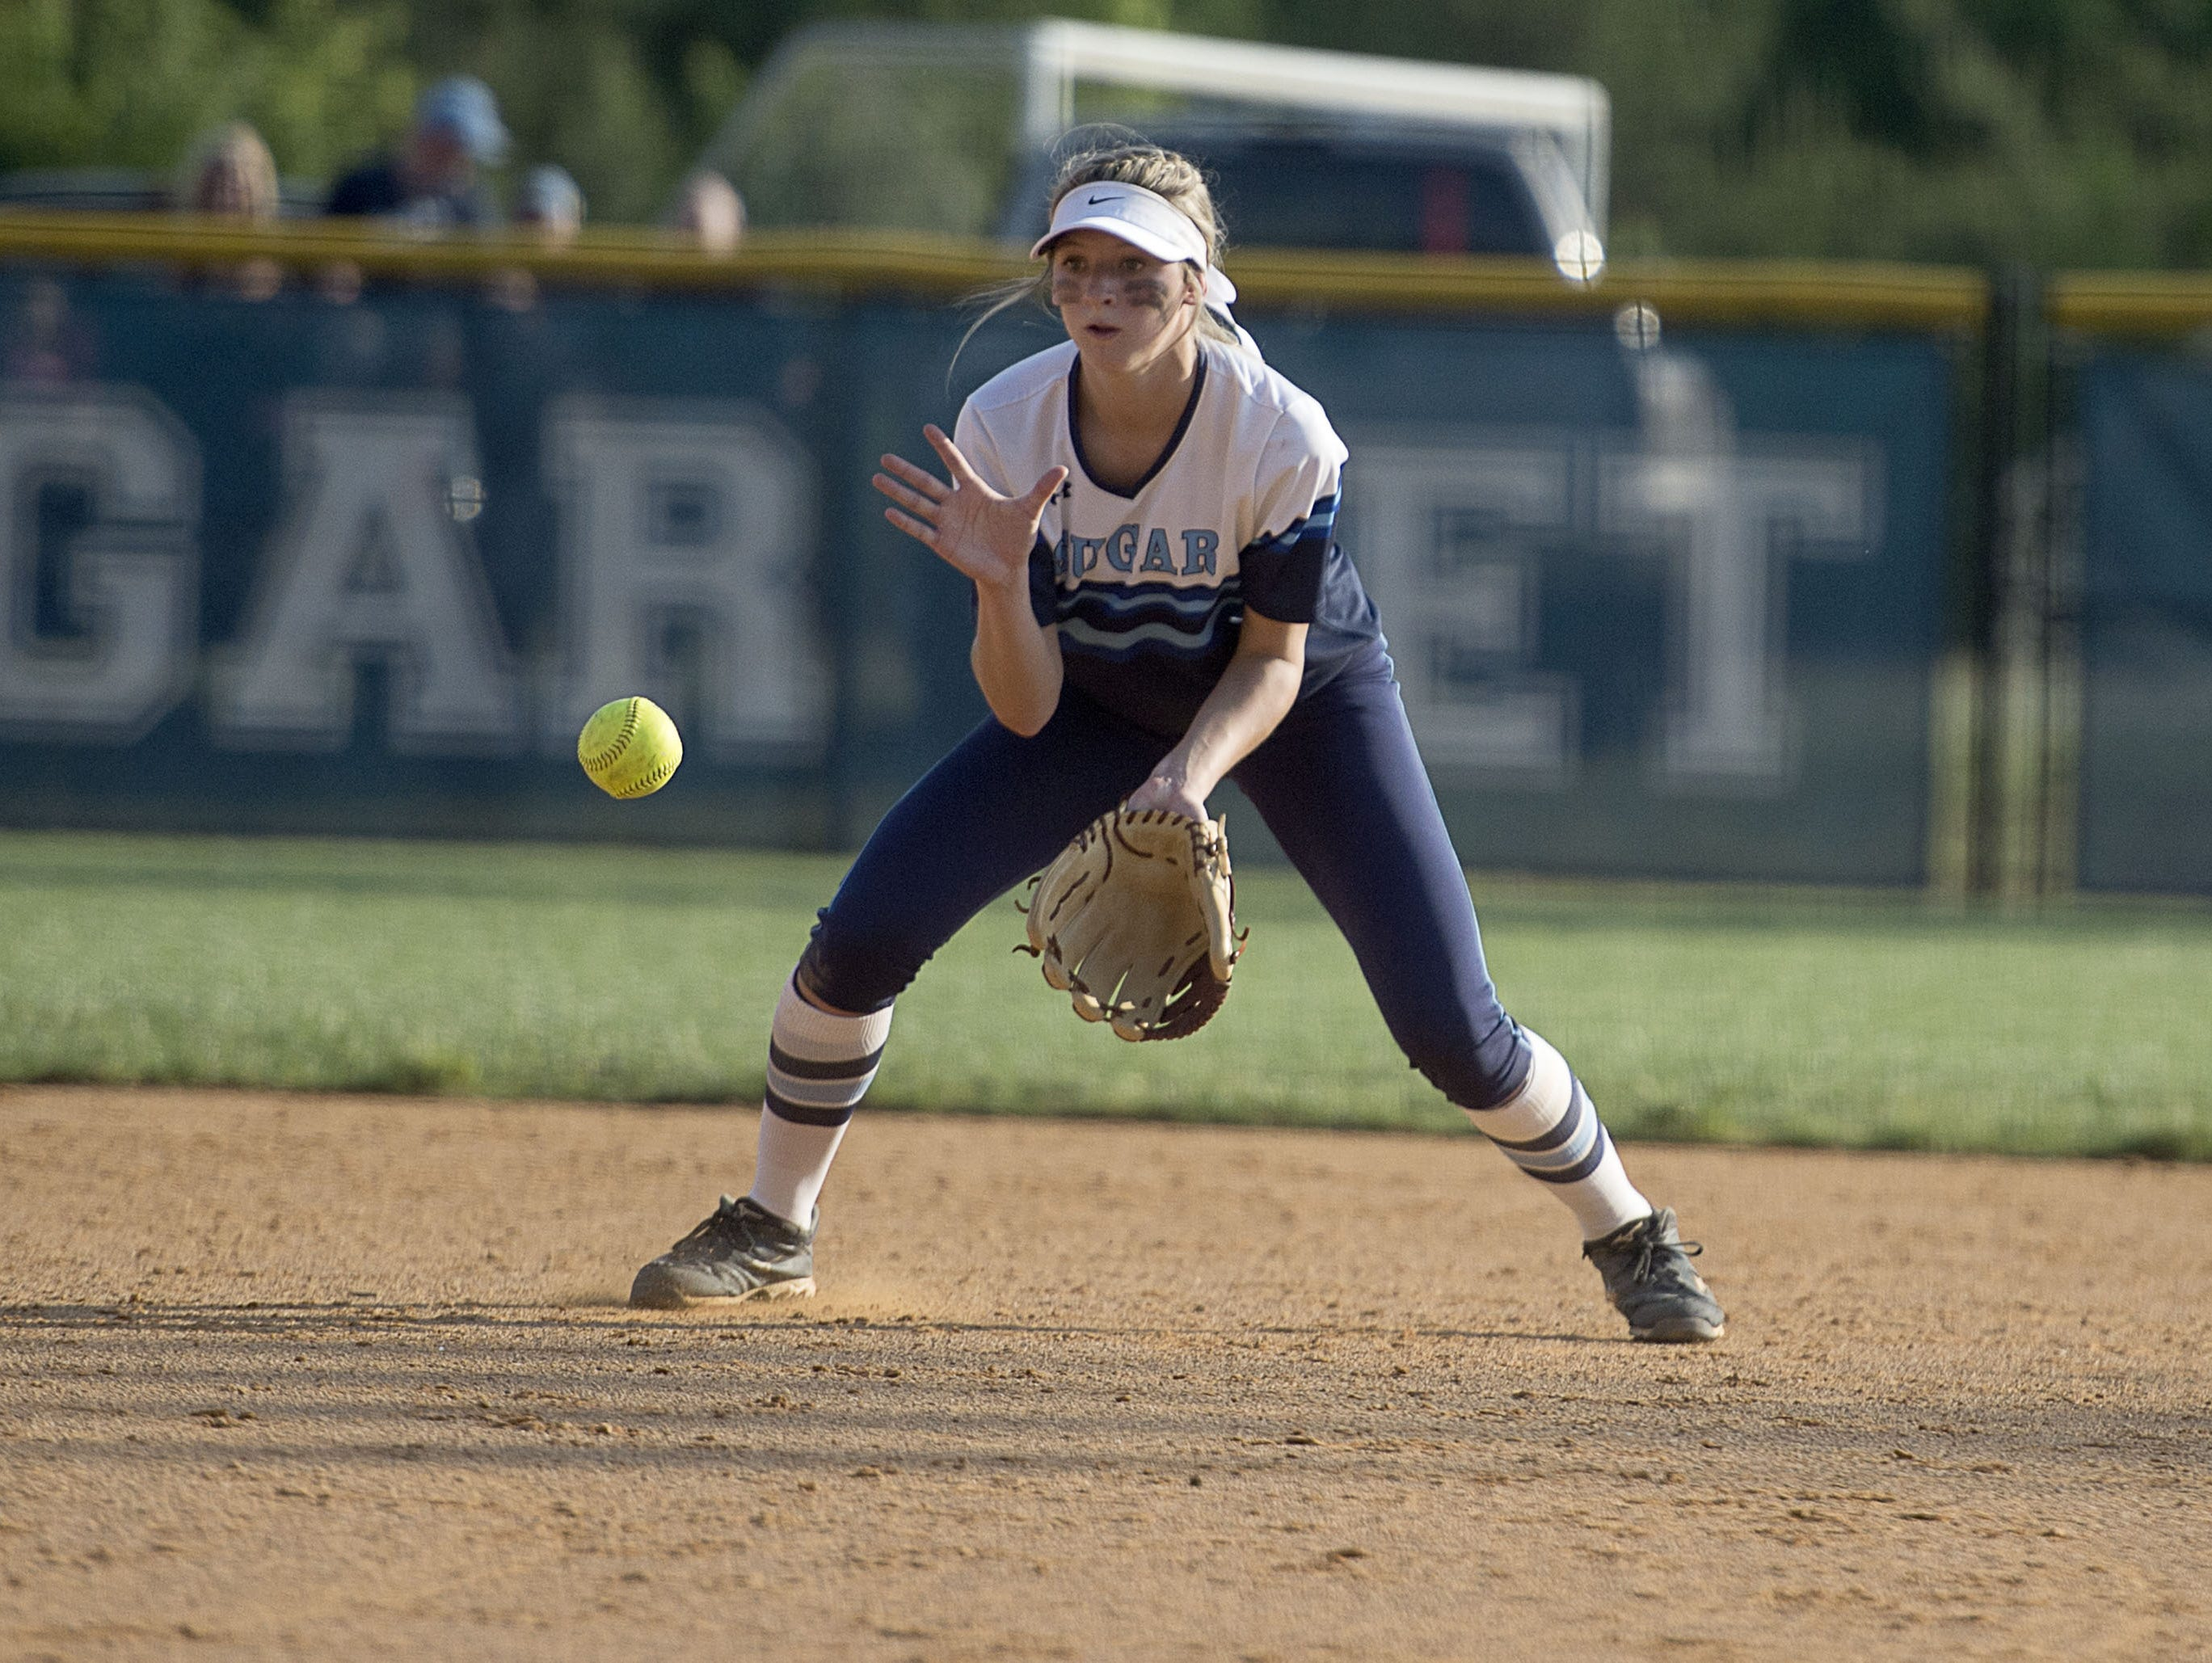 Enka sophomore second baseman Kloyee Anderson is the Mountain Athletic Conference Player of the Year for softball.